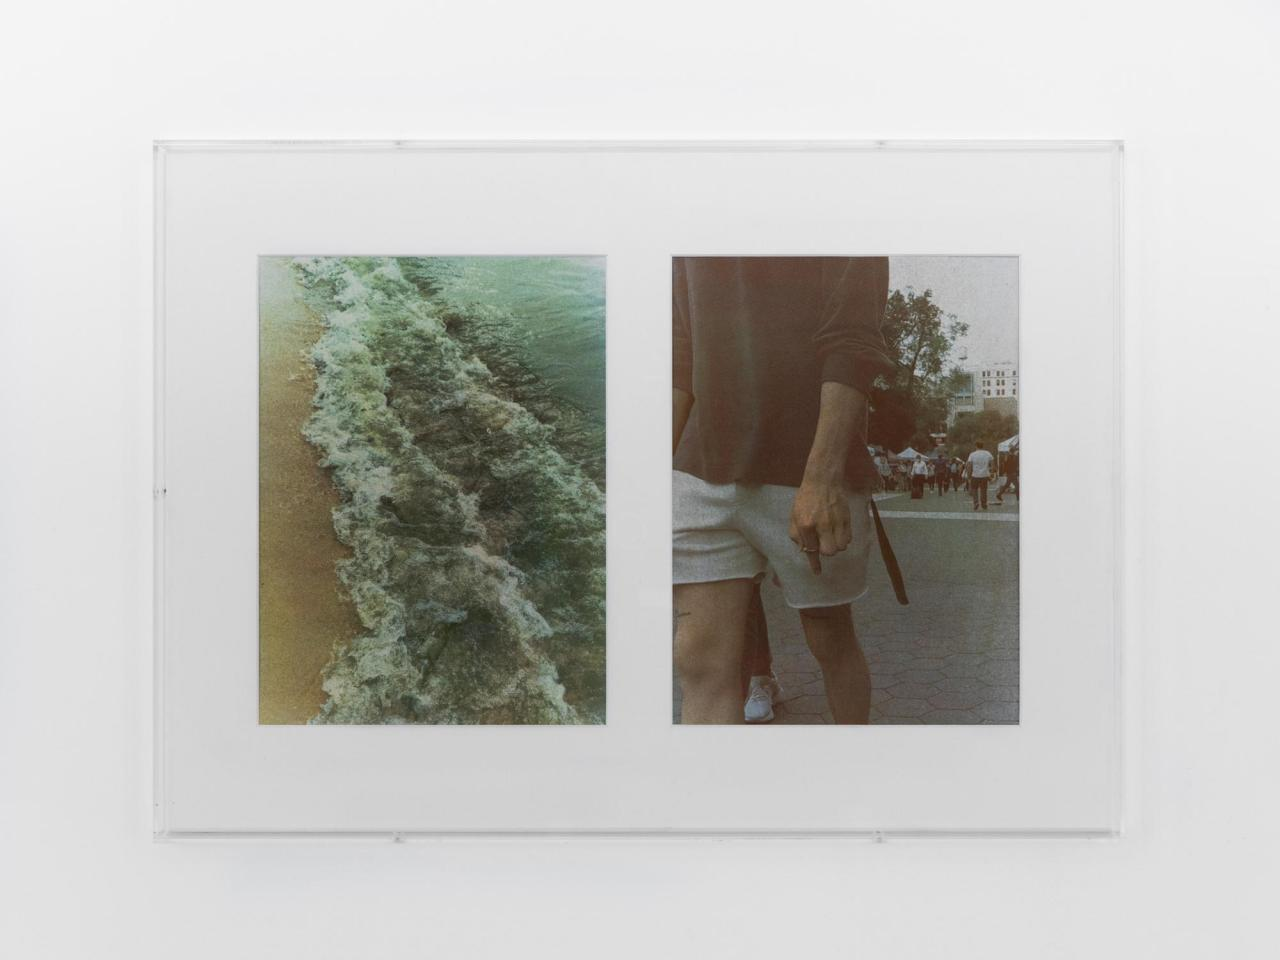 Christopher Aque, Flow , 2021. UV-C exposed gum bichromate prints on paper in acrylic and linen passe-partout frame. (51 × 71 × 3.6 cm). Courtesy: the artist and Sweetwater, Berlin. Photo: Diana Pfammatter